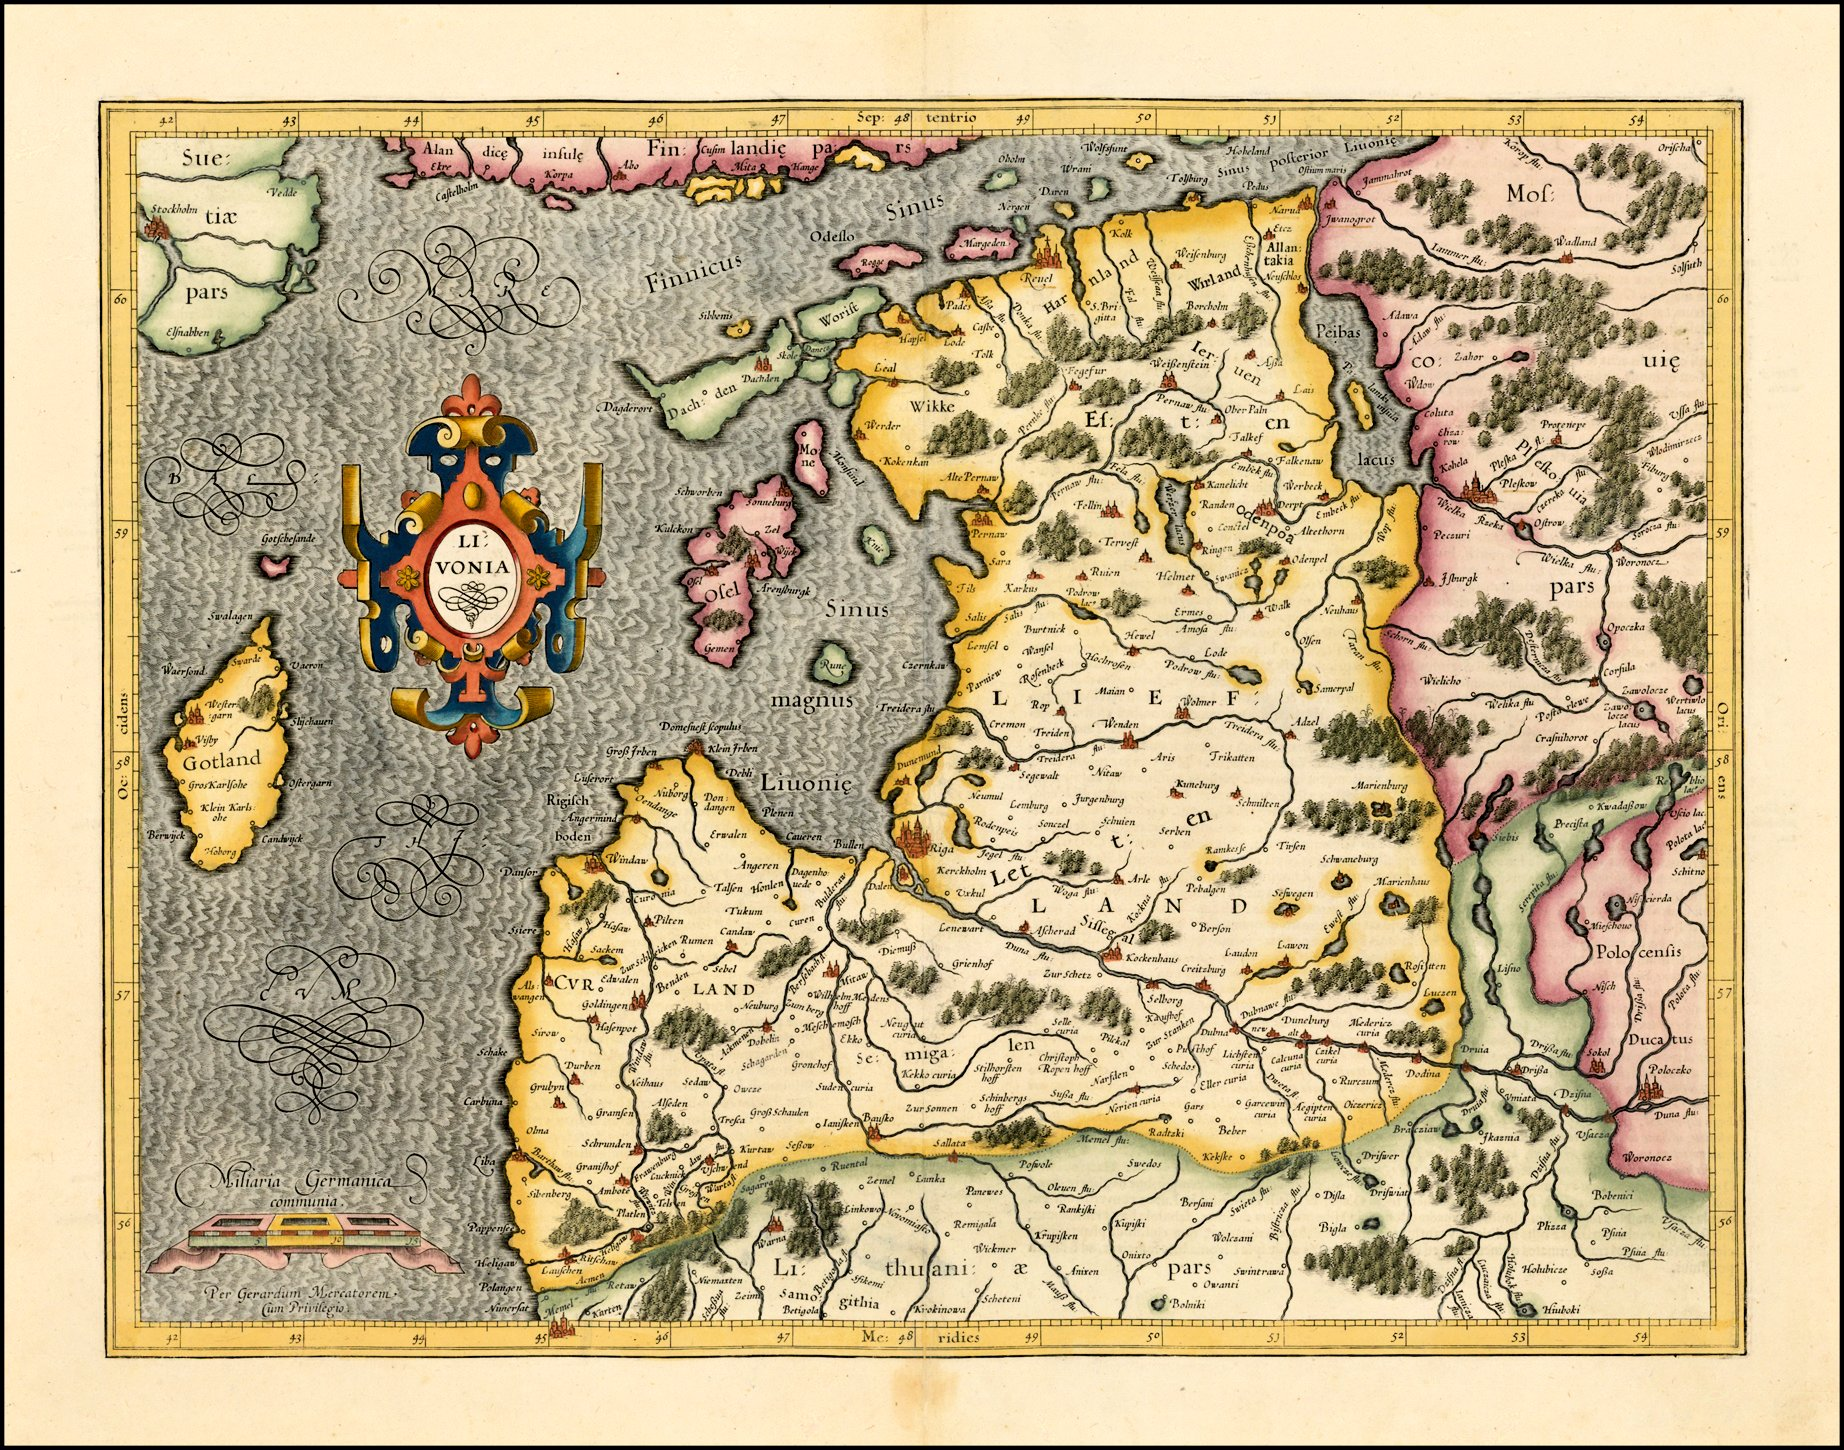 Maps1623 50 lithuania paris 55 x 8 inches from his atlas minor first published in 1607 compare with 1620 versions from beach antique maps prints on ebay gumiabroncs Choice Image